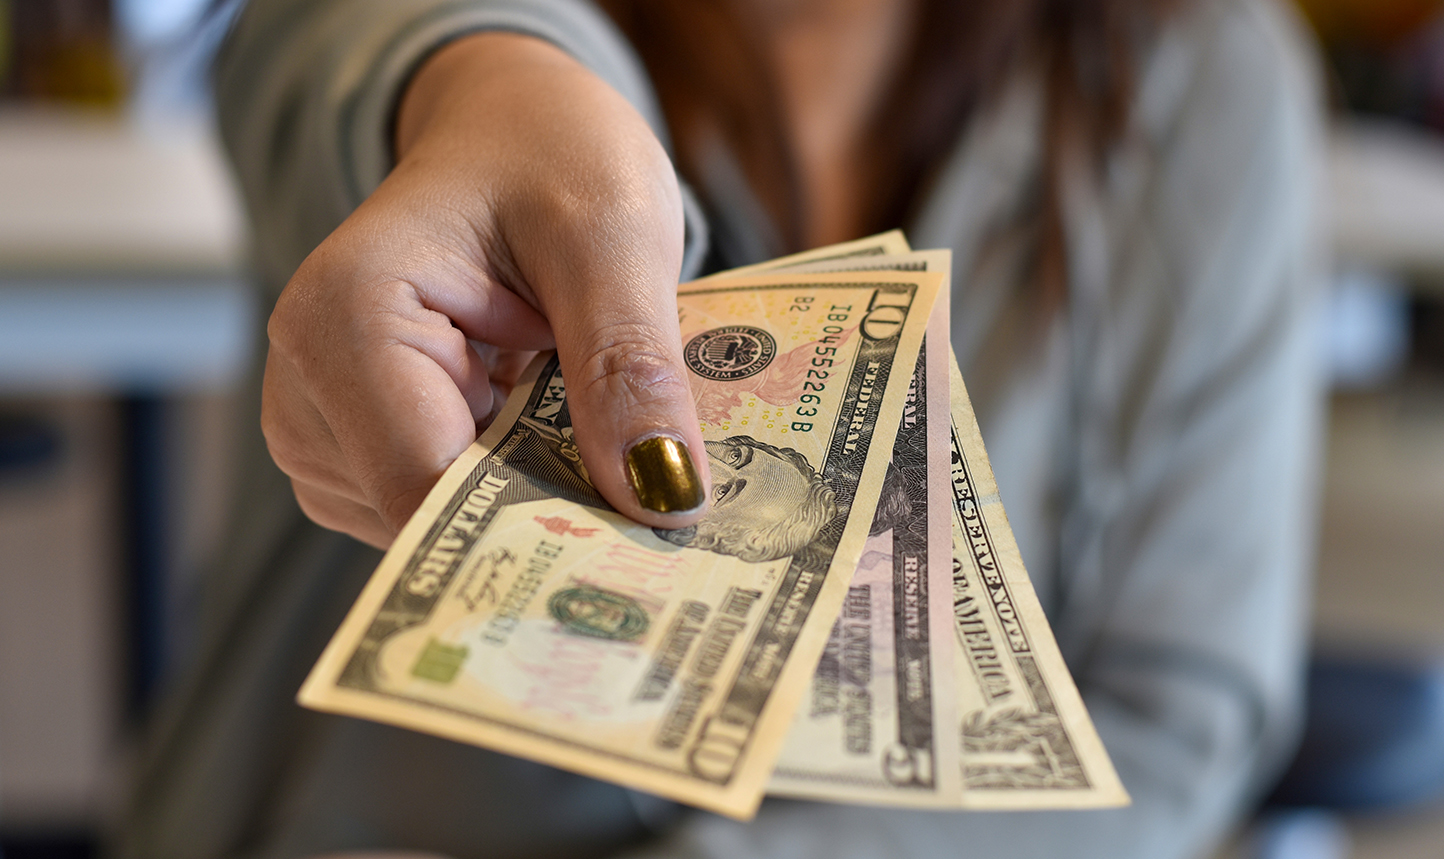 4 Simple Ways to Earn Cash By Watching Commercials